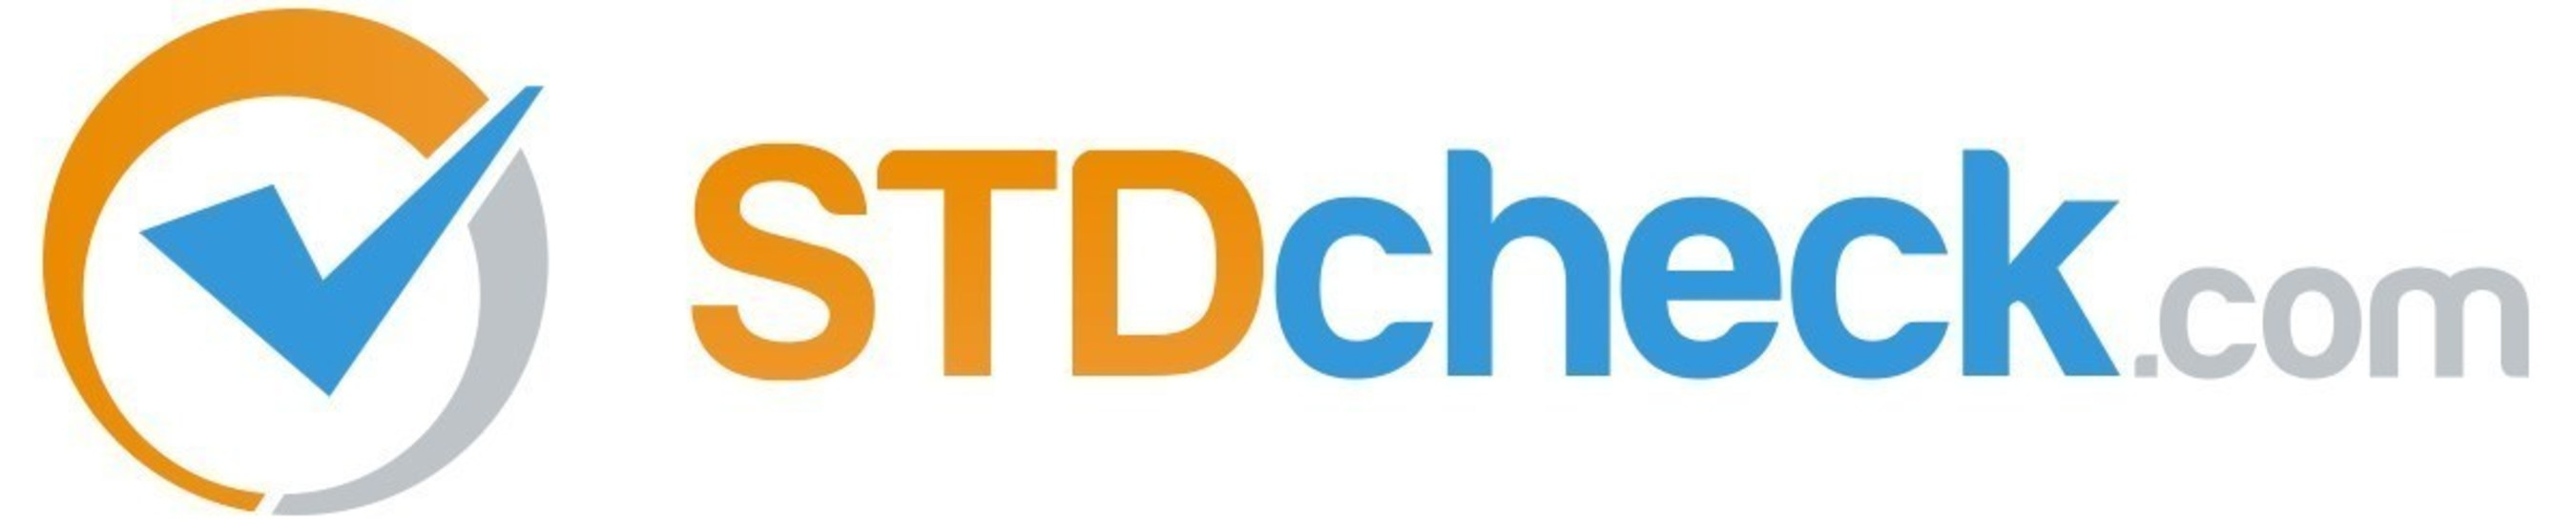 STDcheck.com is offering scholarships to HIV-positive college and university students. Visit stdcheck.com to apply.